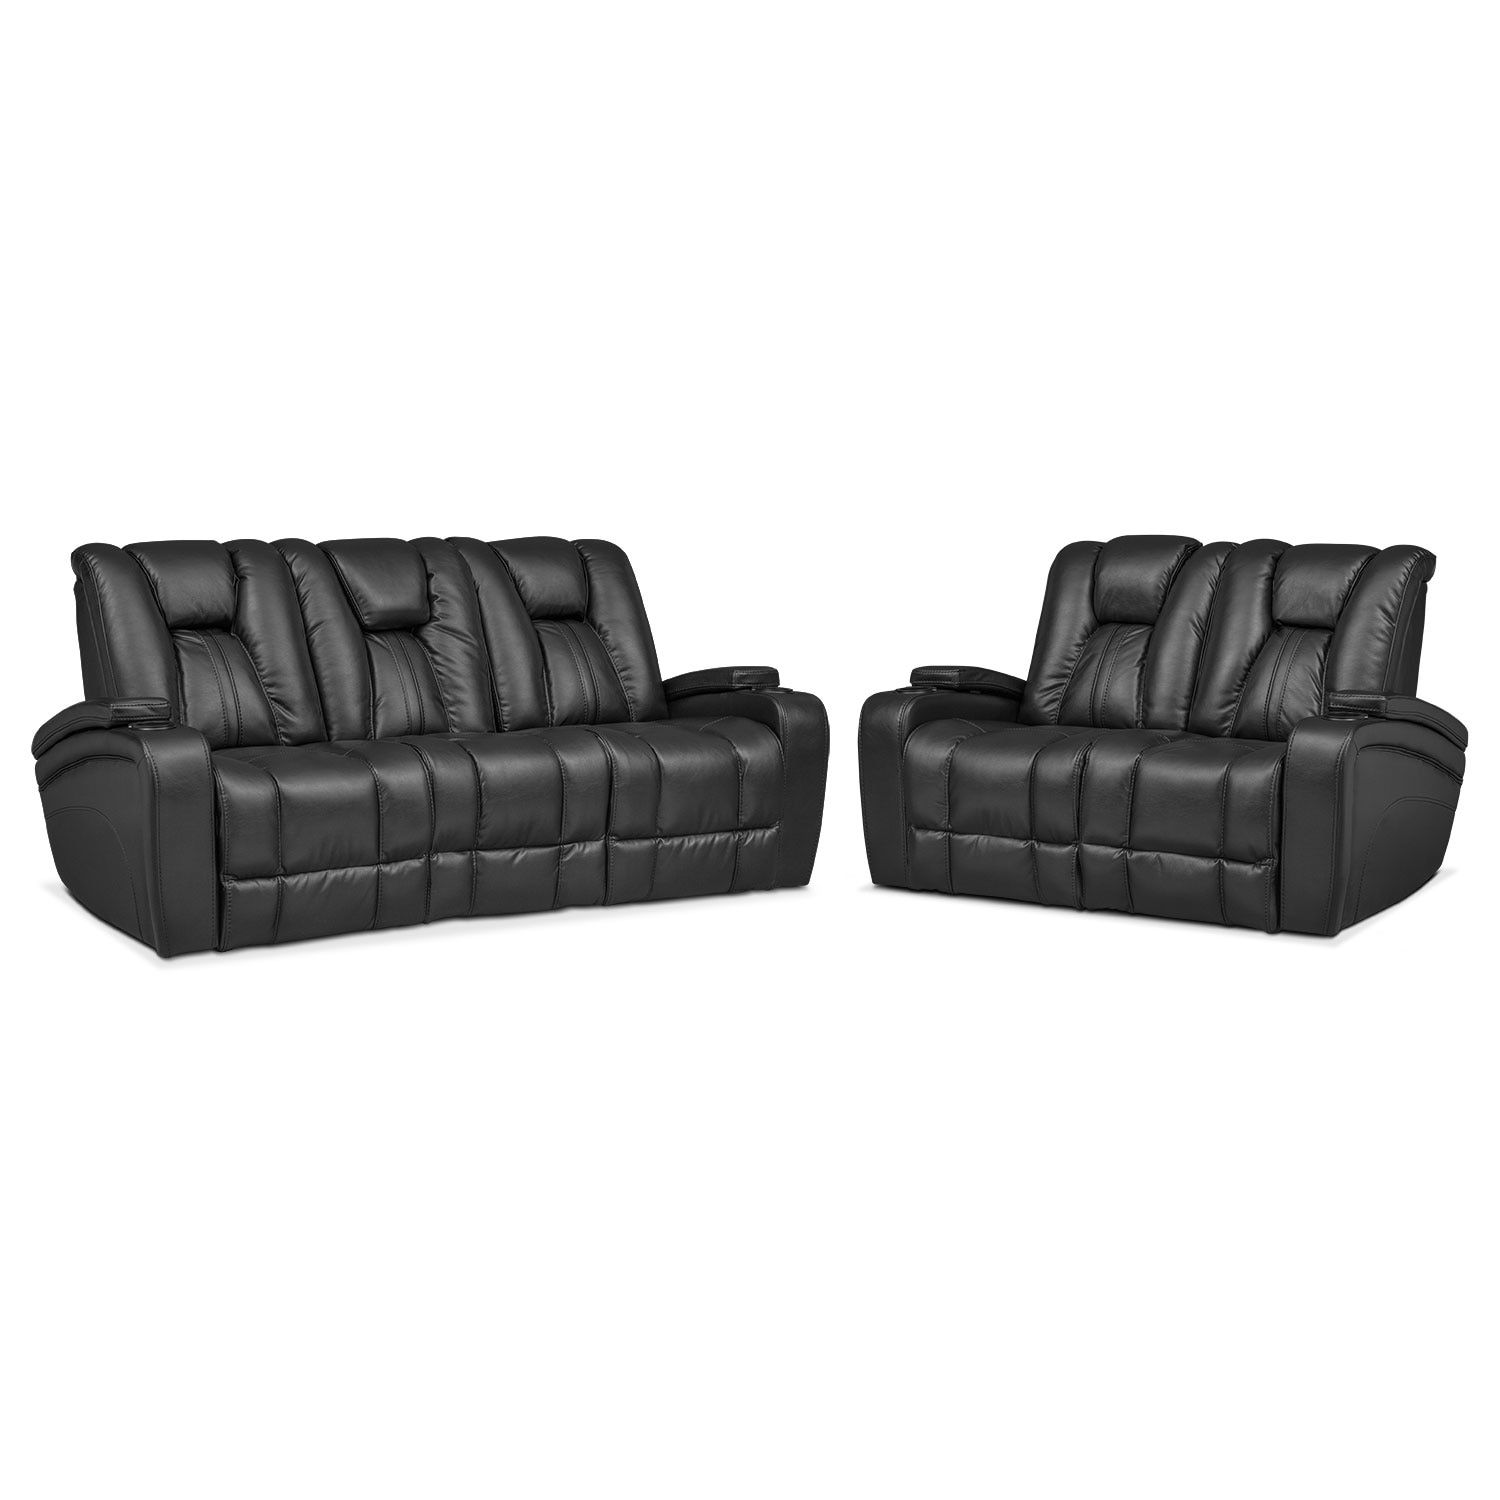 Enjoyable Pulsar Dual Power Reclining Sofa And Dual Power Reclining Forskolin Free Trial Chair Design Images Forskolin Free Trialorg